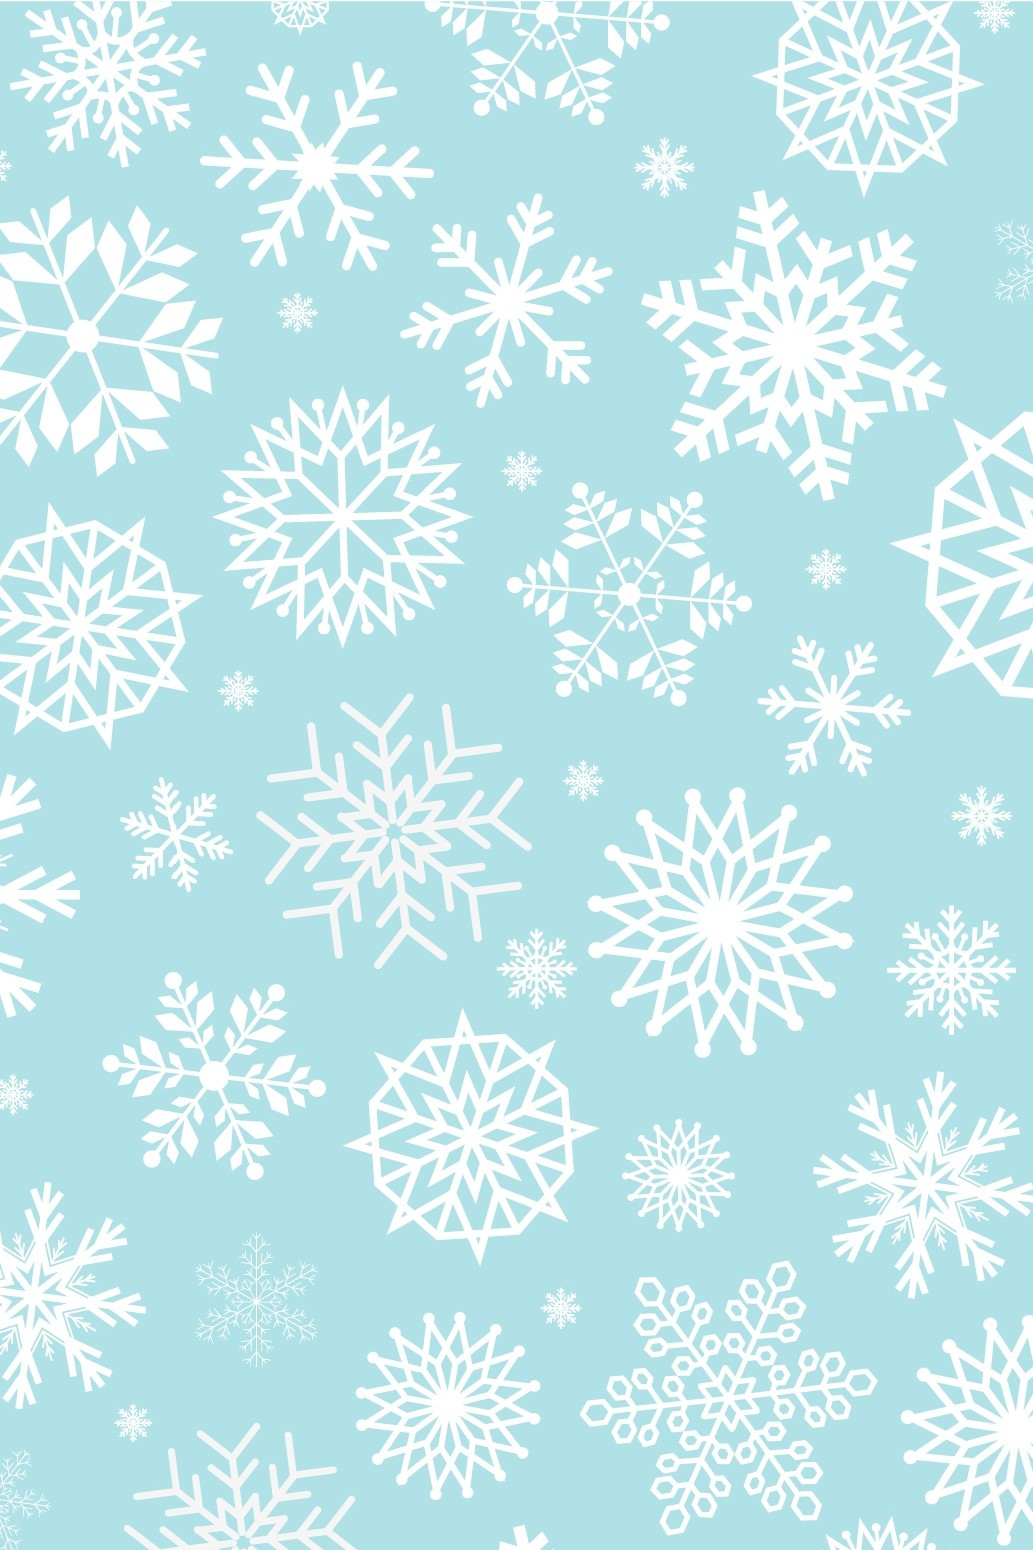 ice crystal snow winter christmas decoration snowflake cold season background